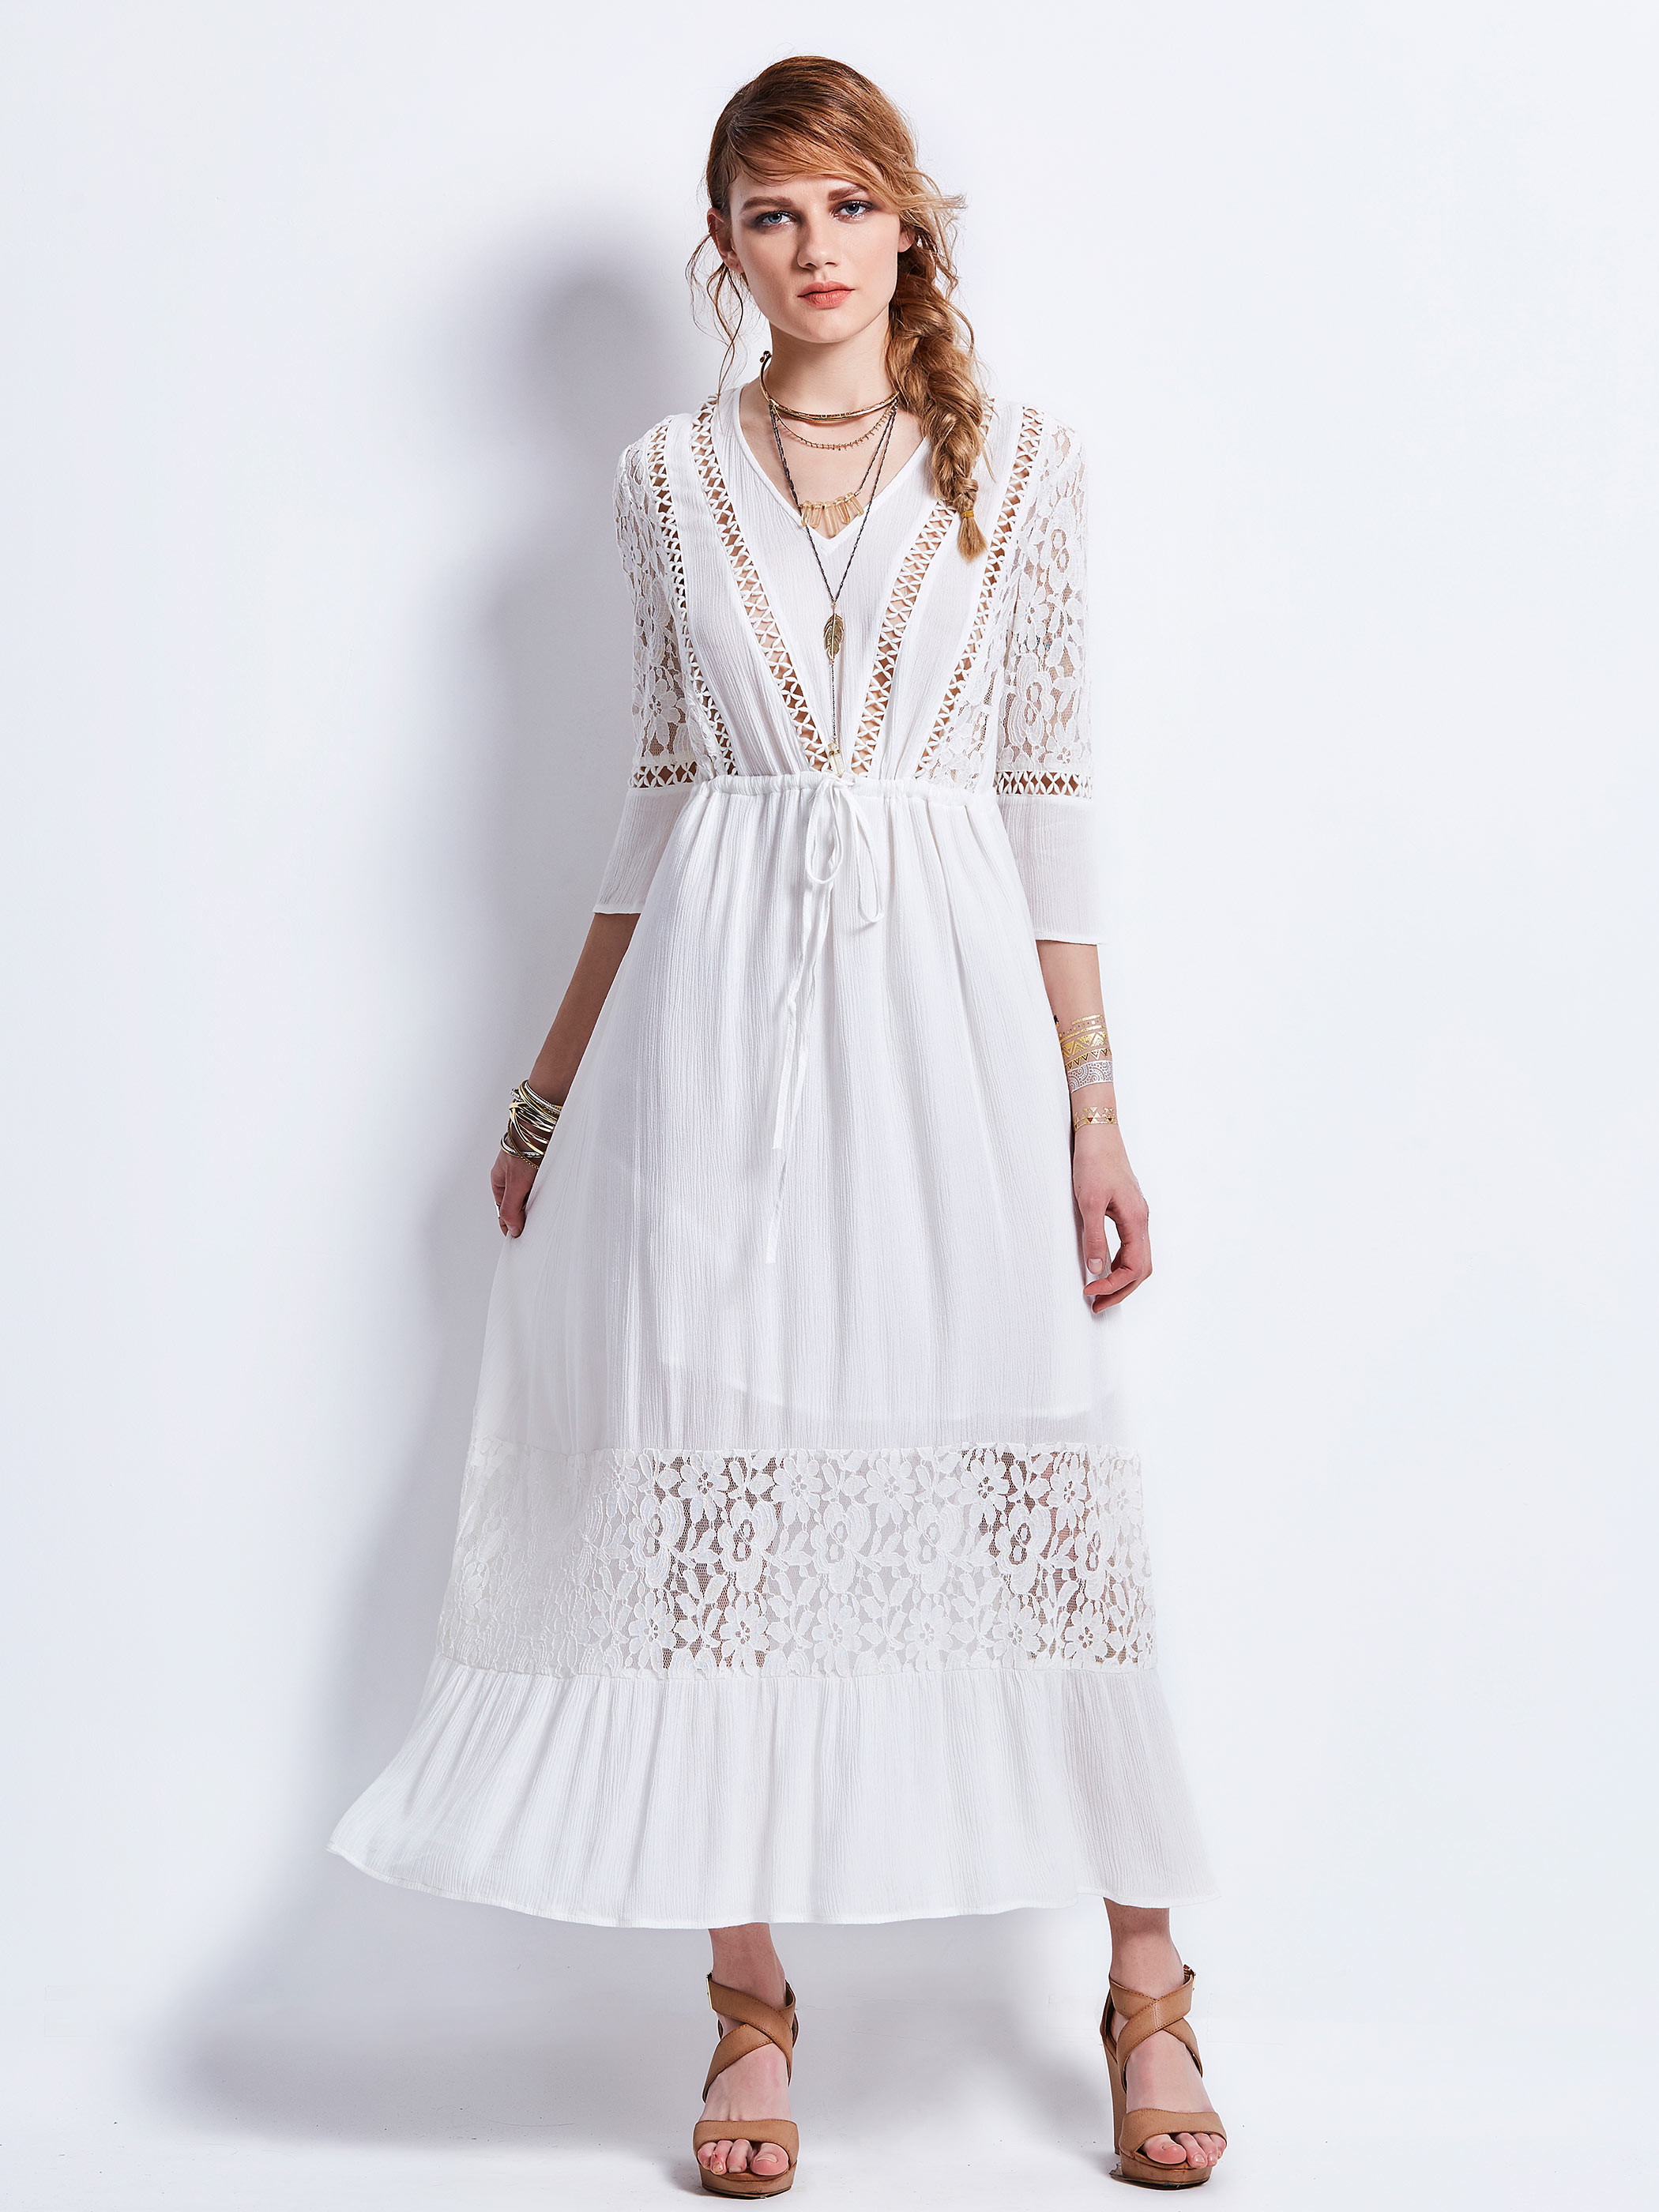 Women Dress White Casual Beach Bohemian Hollow out Slip Dress Lace Up Three-Quarter Sleeve Dresses Elegant Party Maxi Dress ...